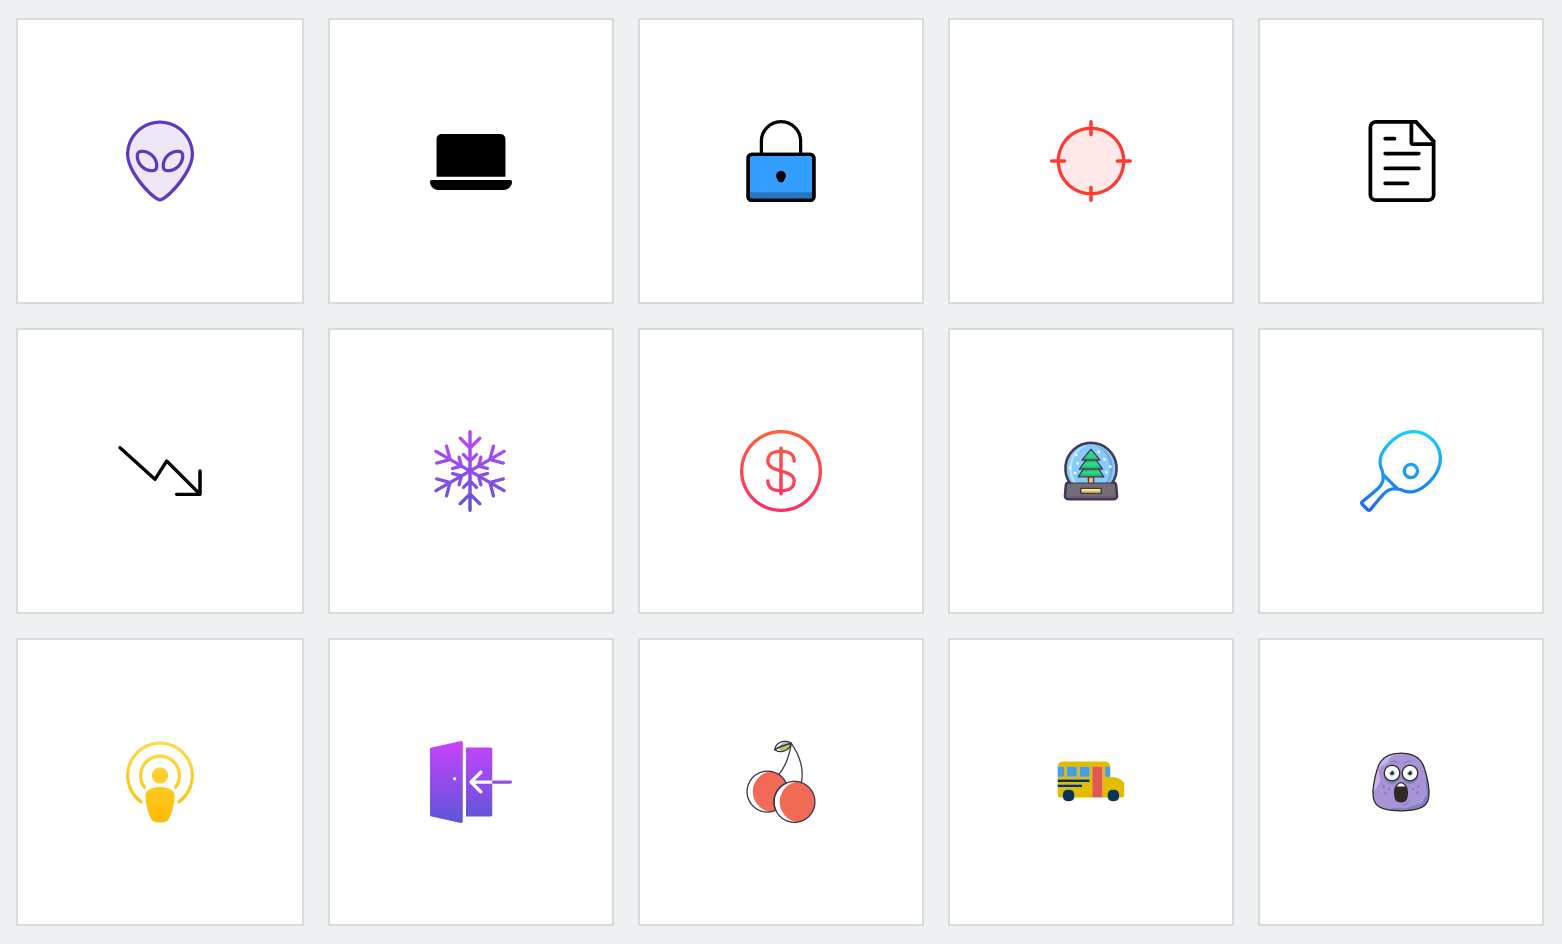 Free Icons from Stockio